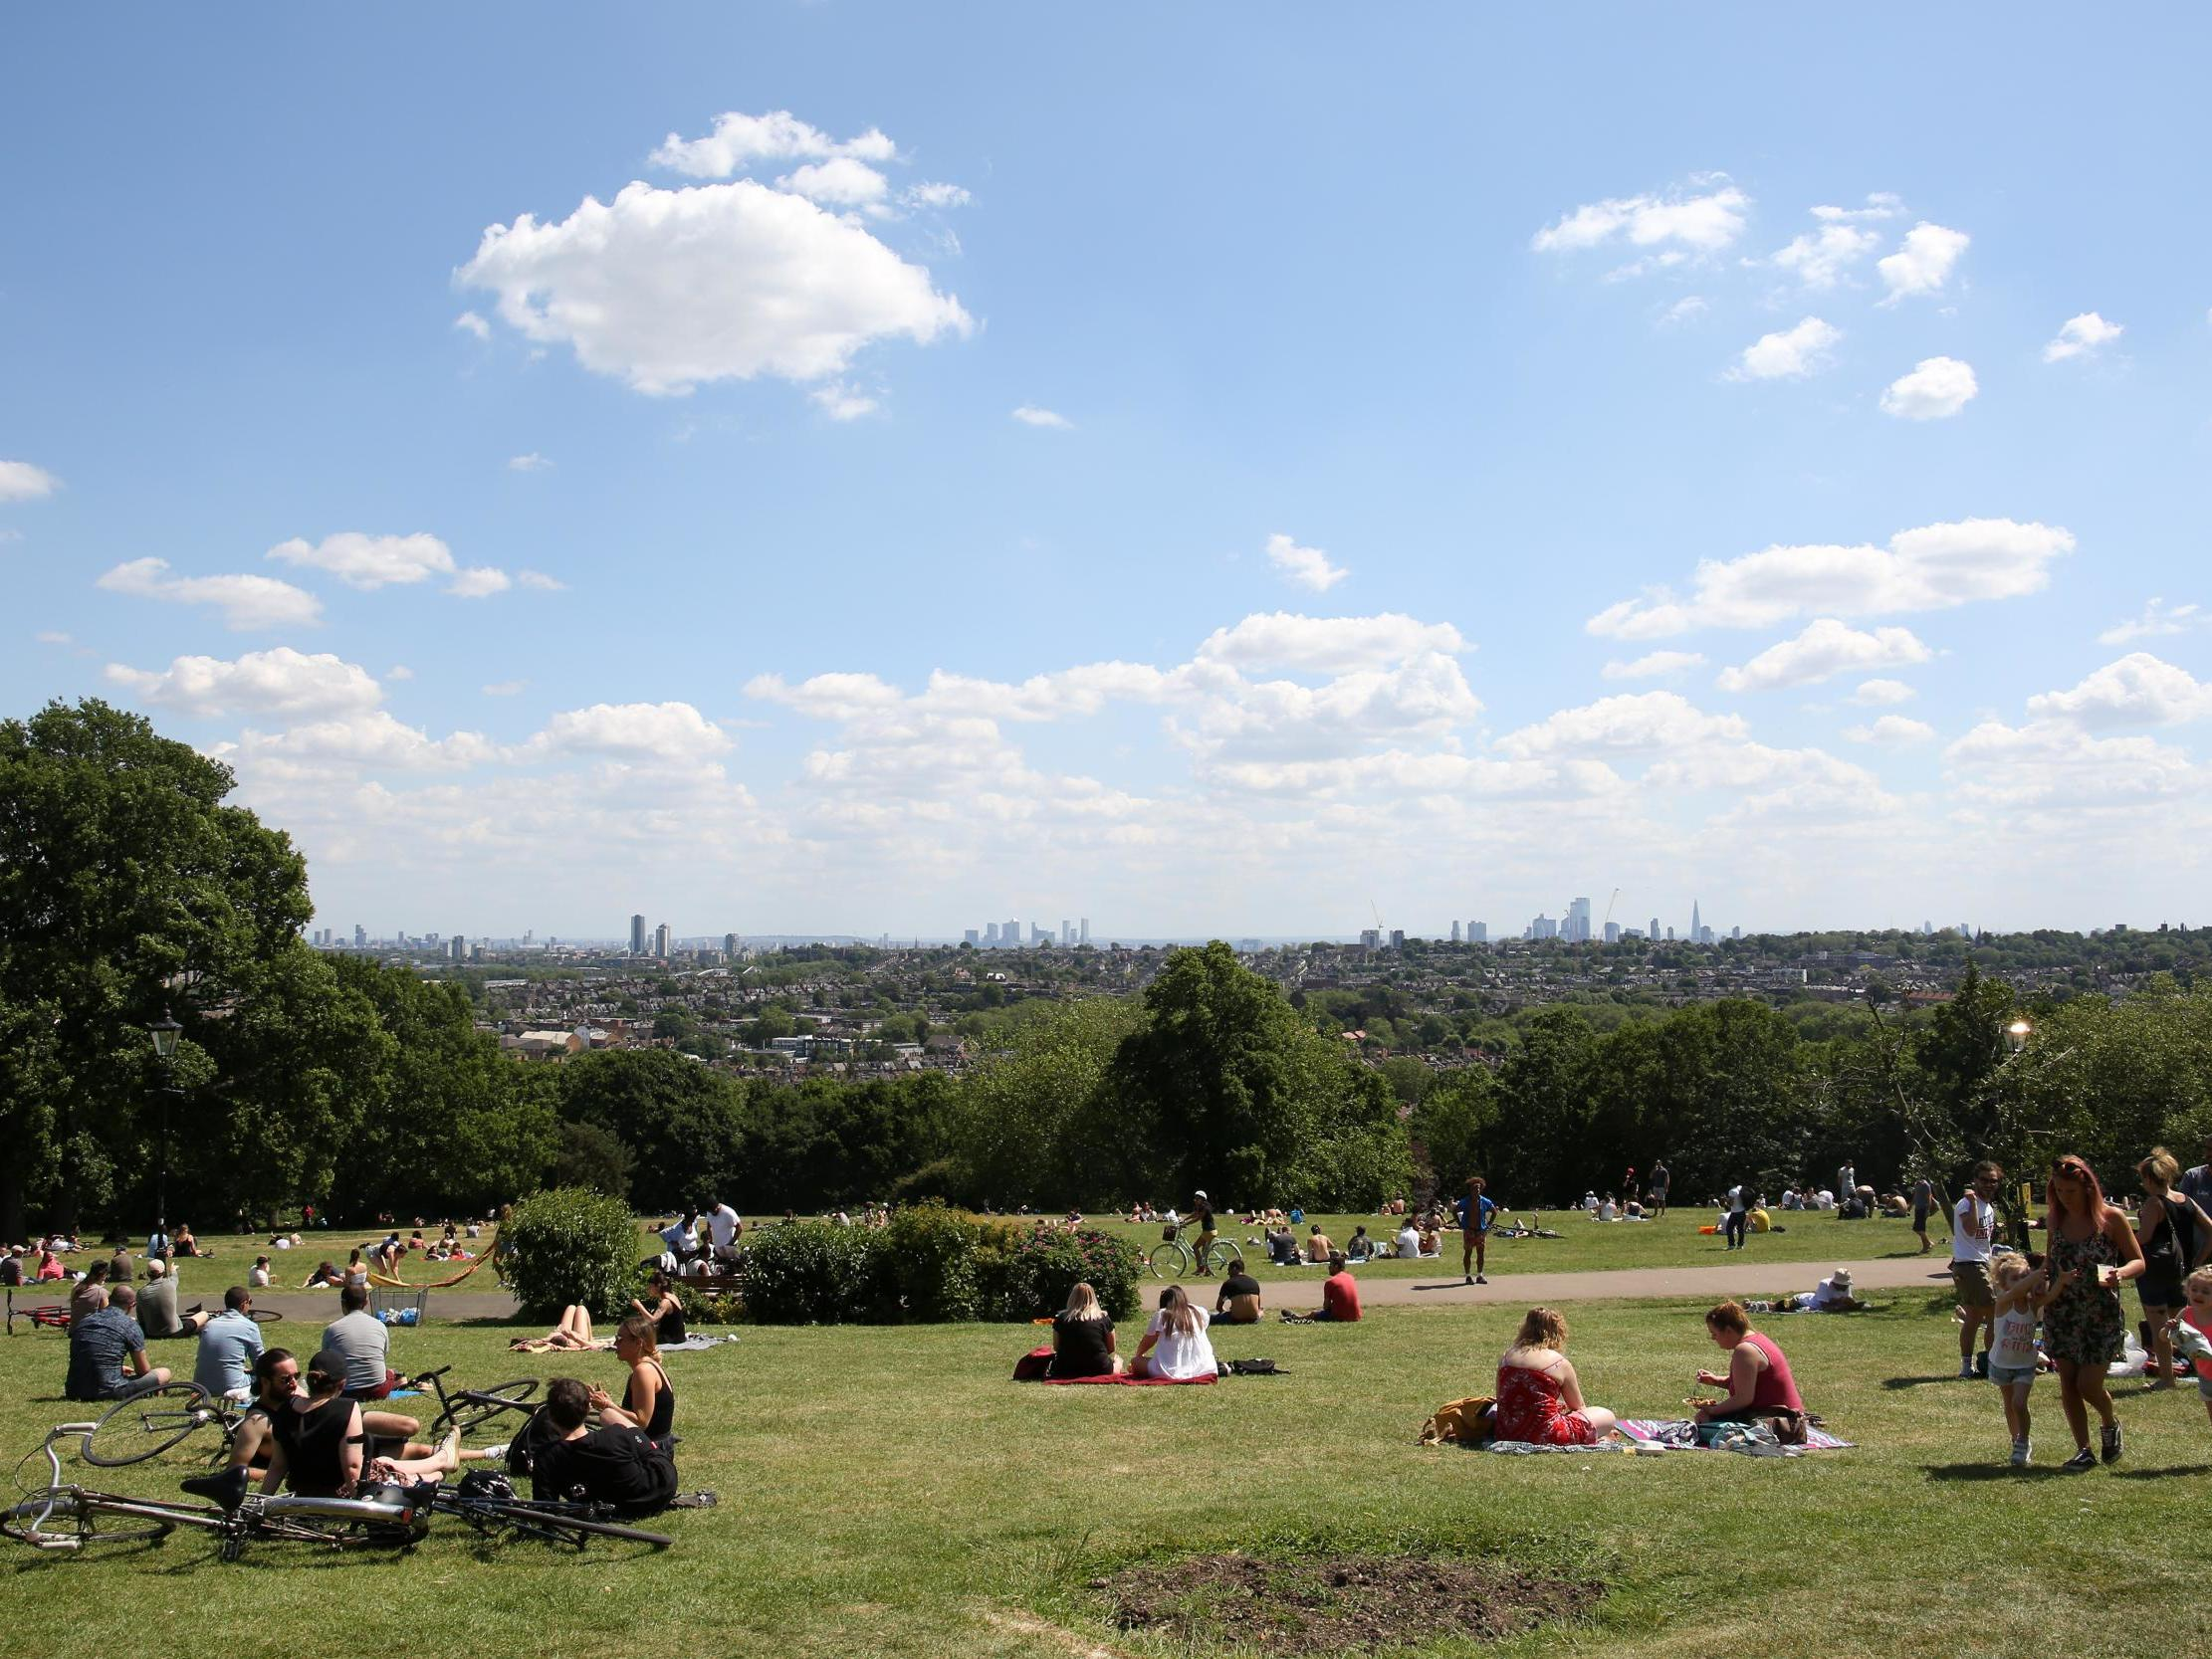 UK weather: Prolonged dry, hot spell could lead to driest May since 1896